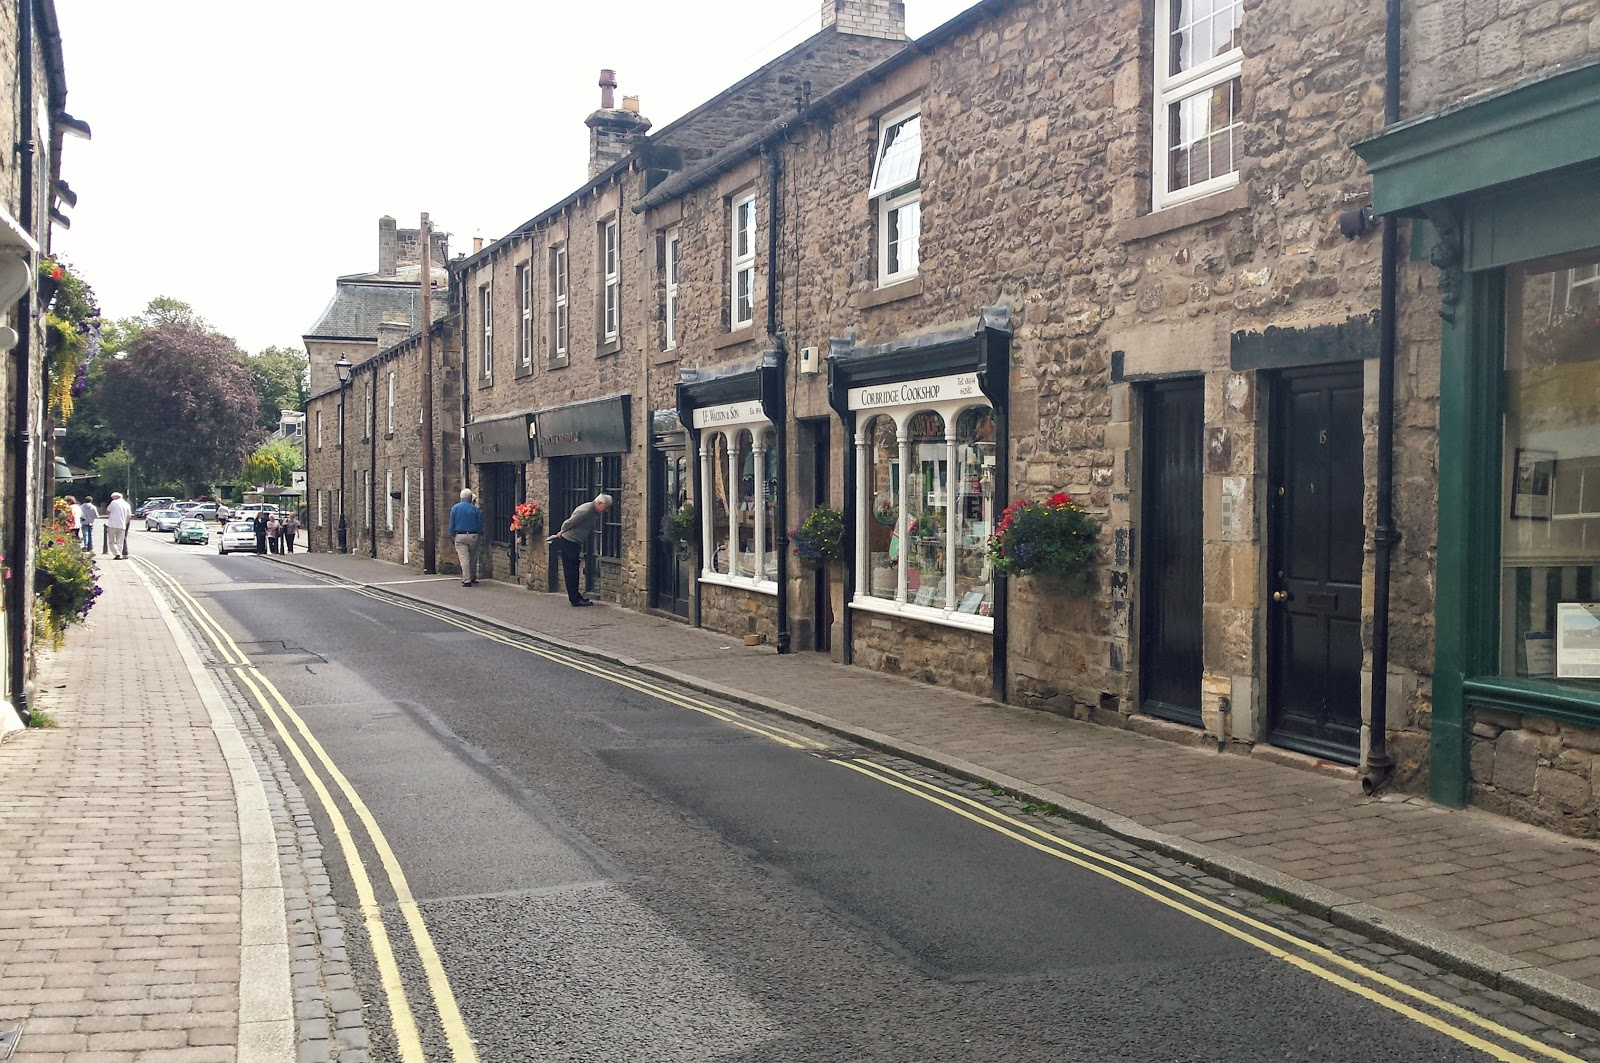 Daytrip To Corbridge